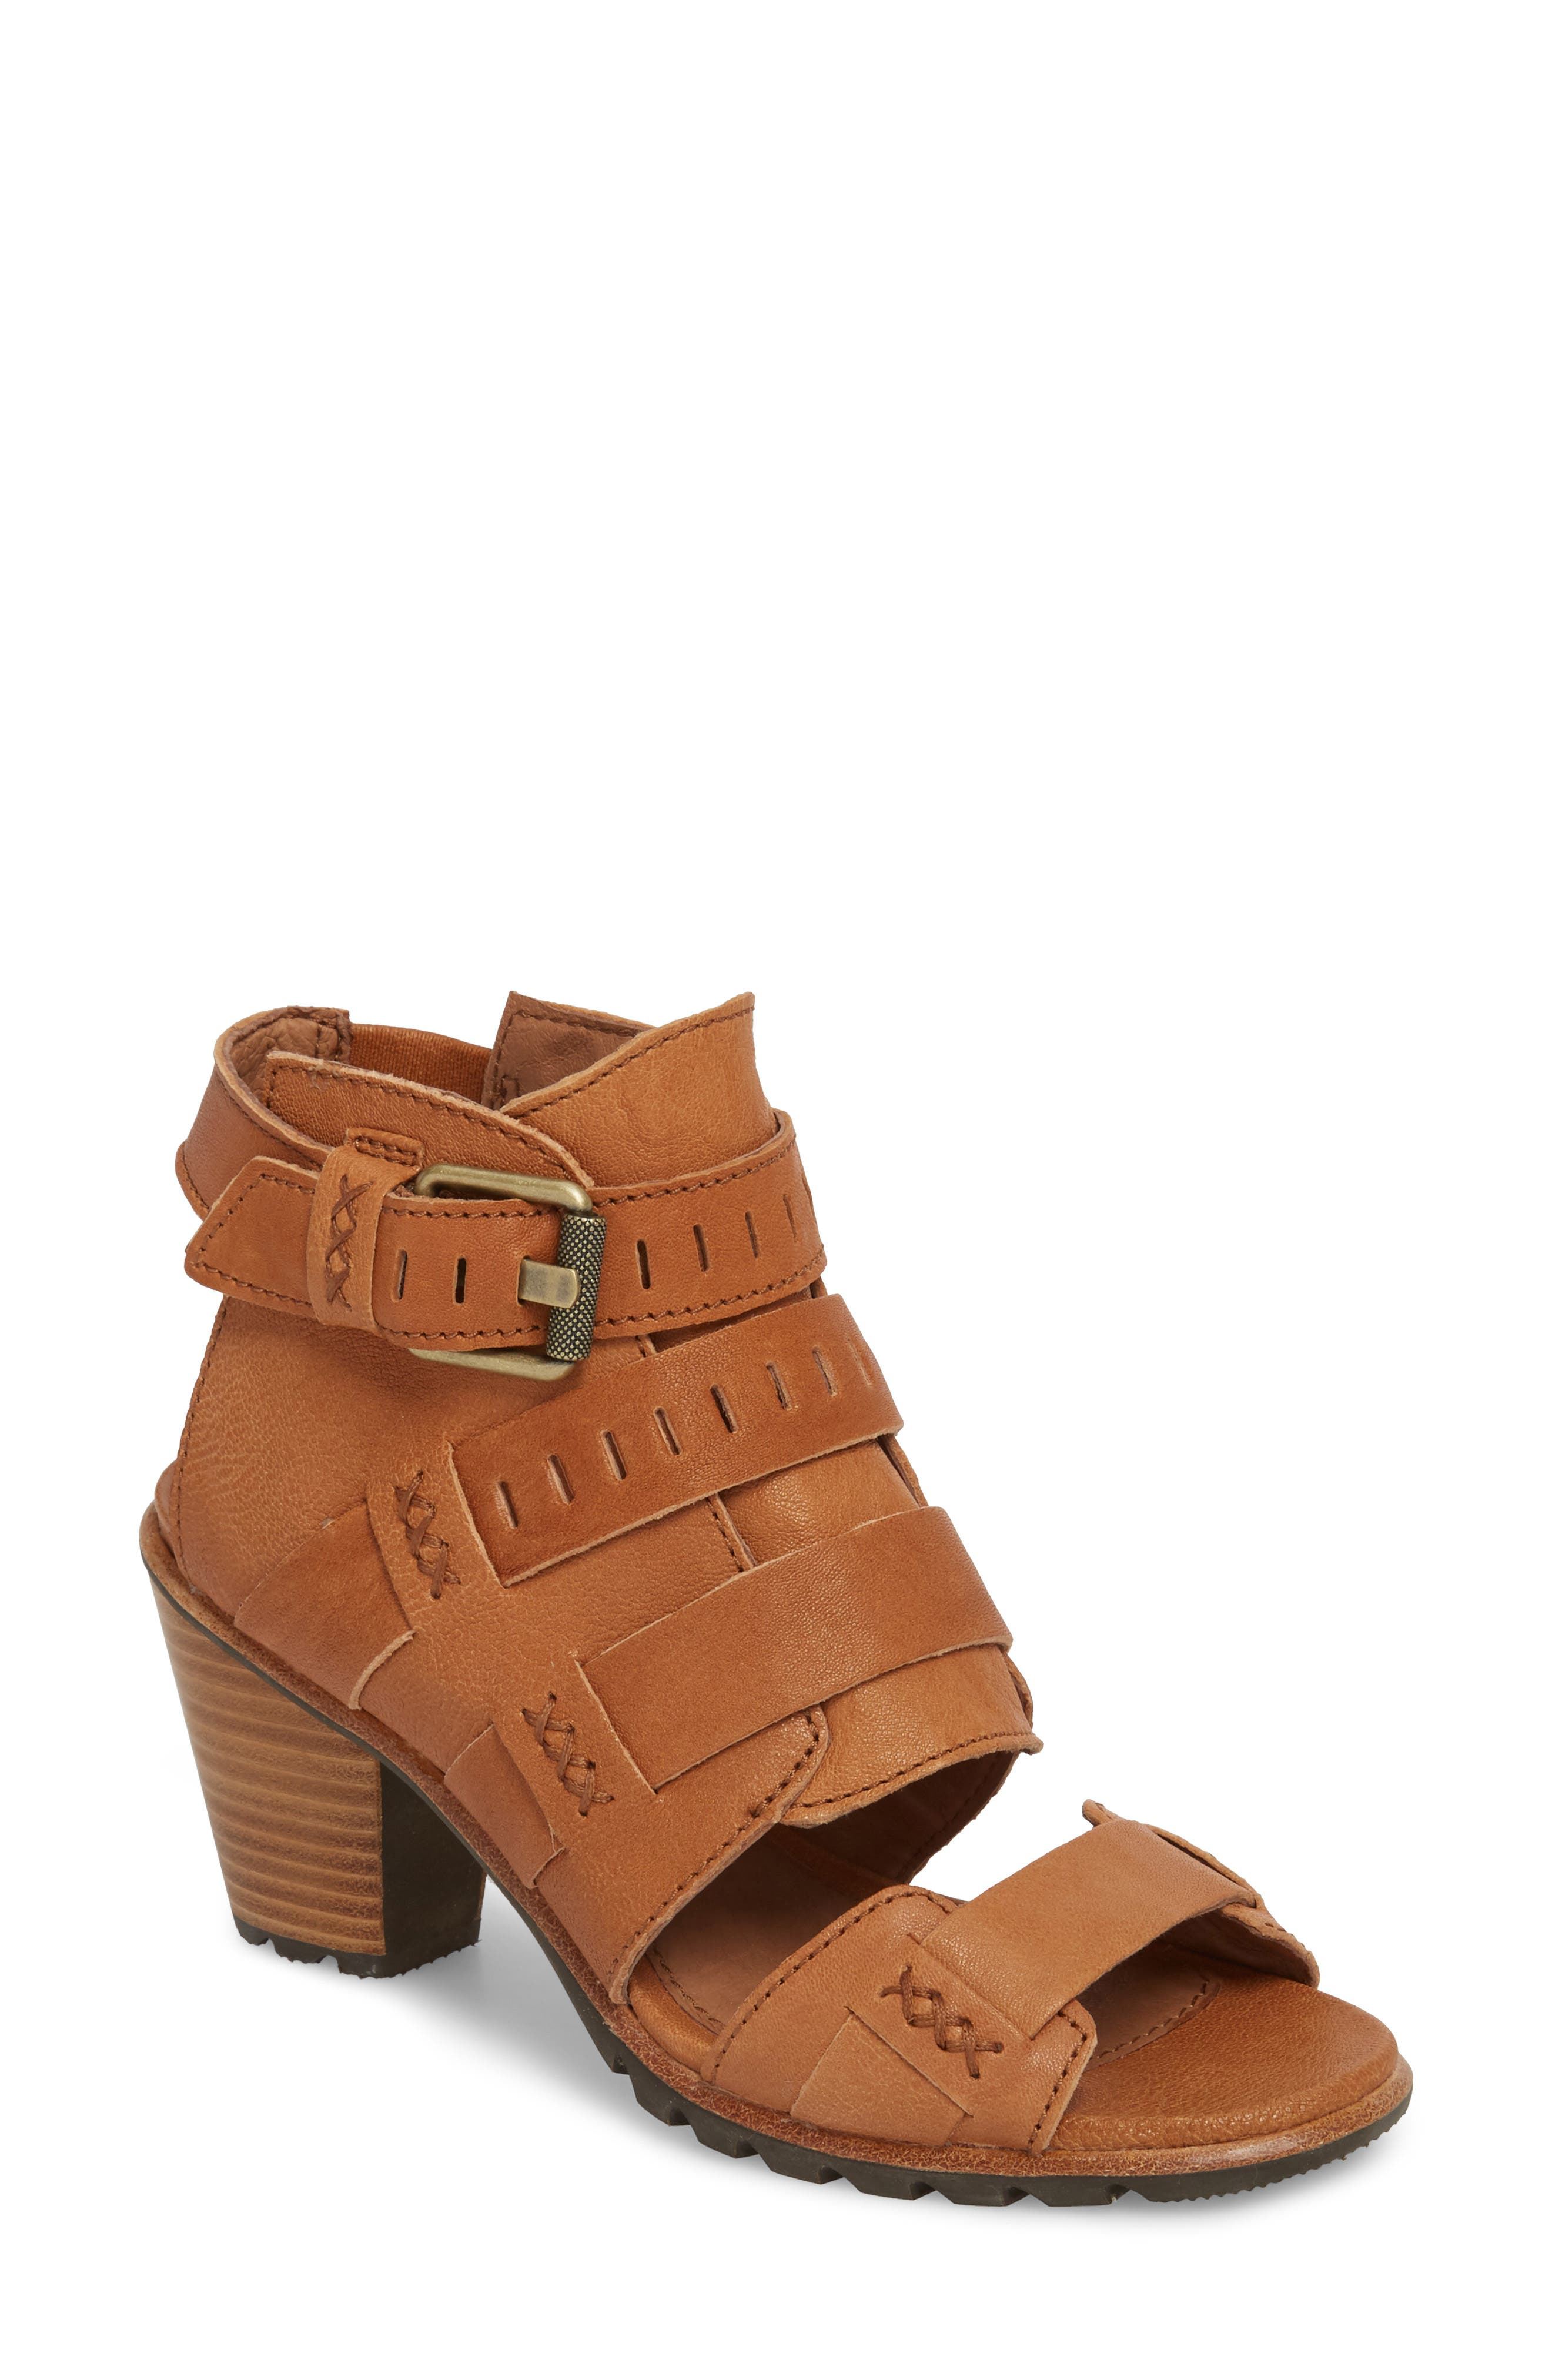 Nadia Buckle Bootie,                             Main thumbnail 1, color,                             Camel Brown